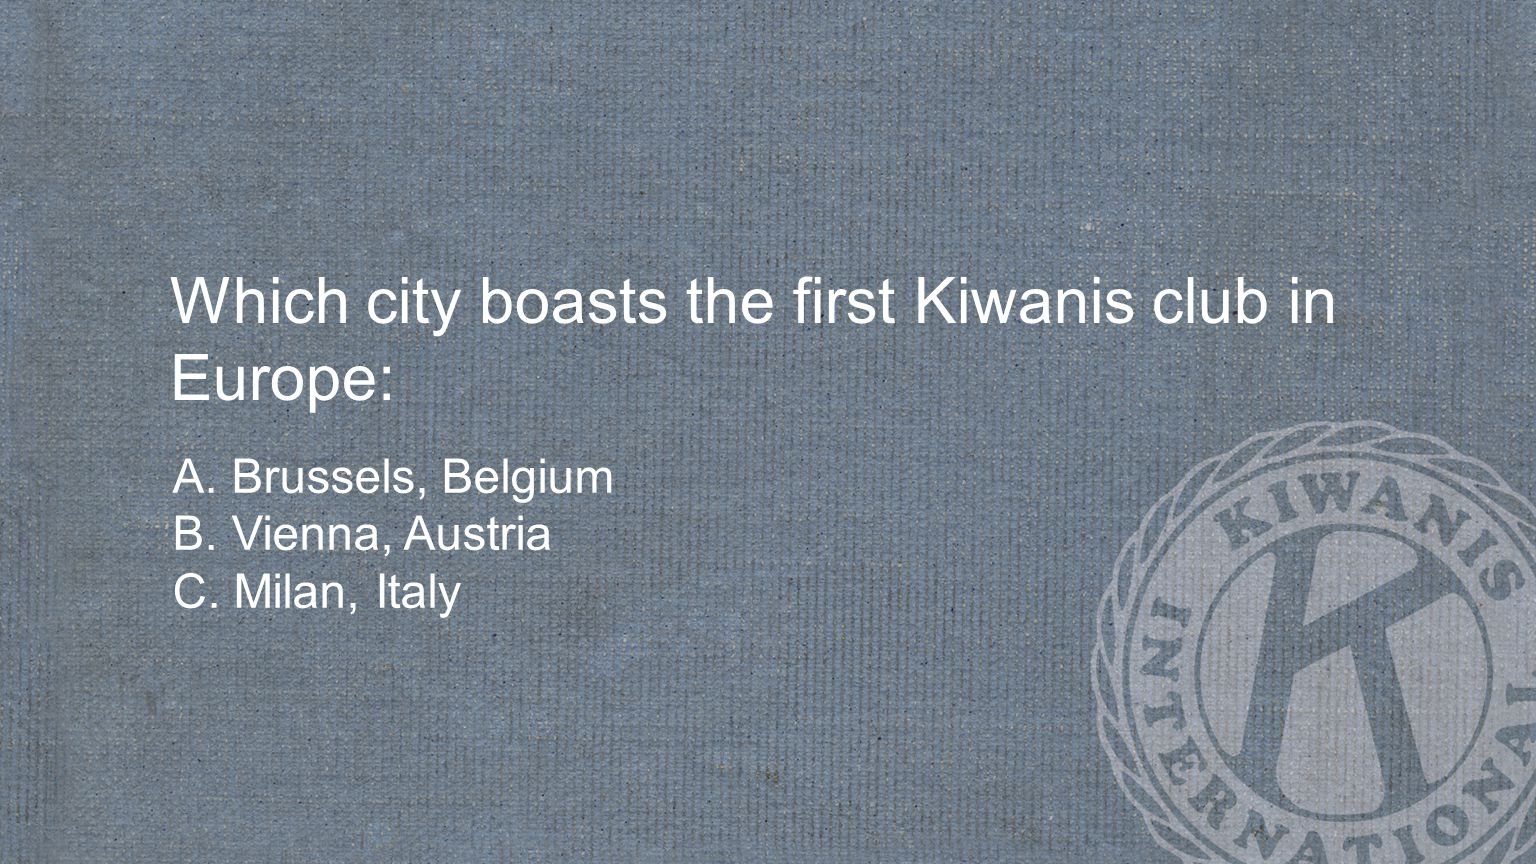 Which city boasts the first Kiwanis club in Europe: